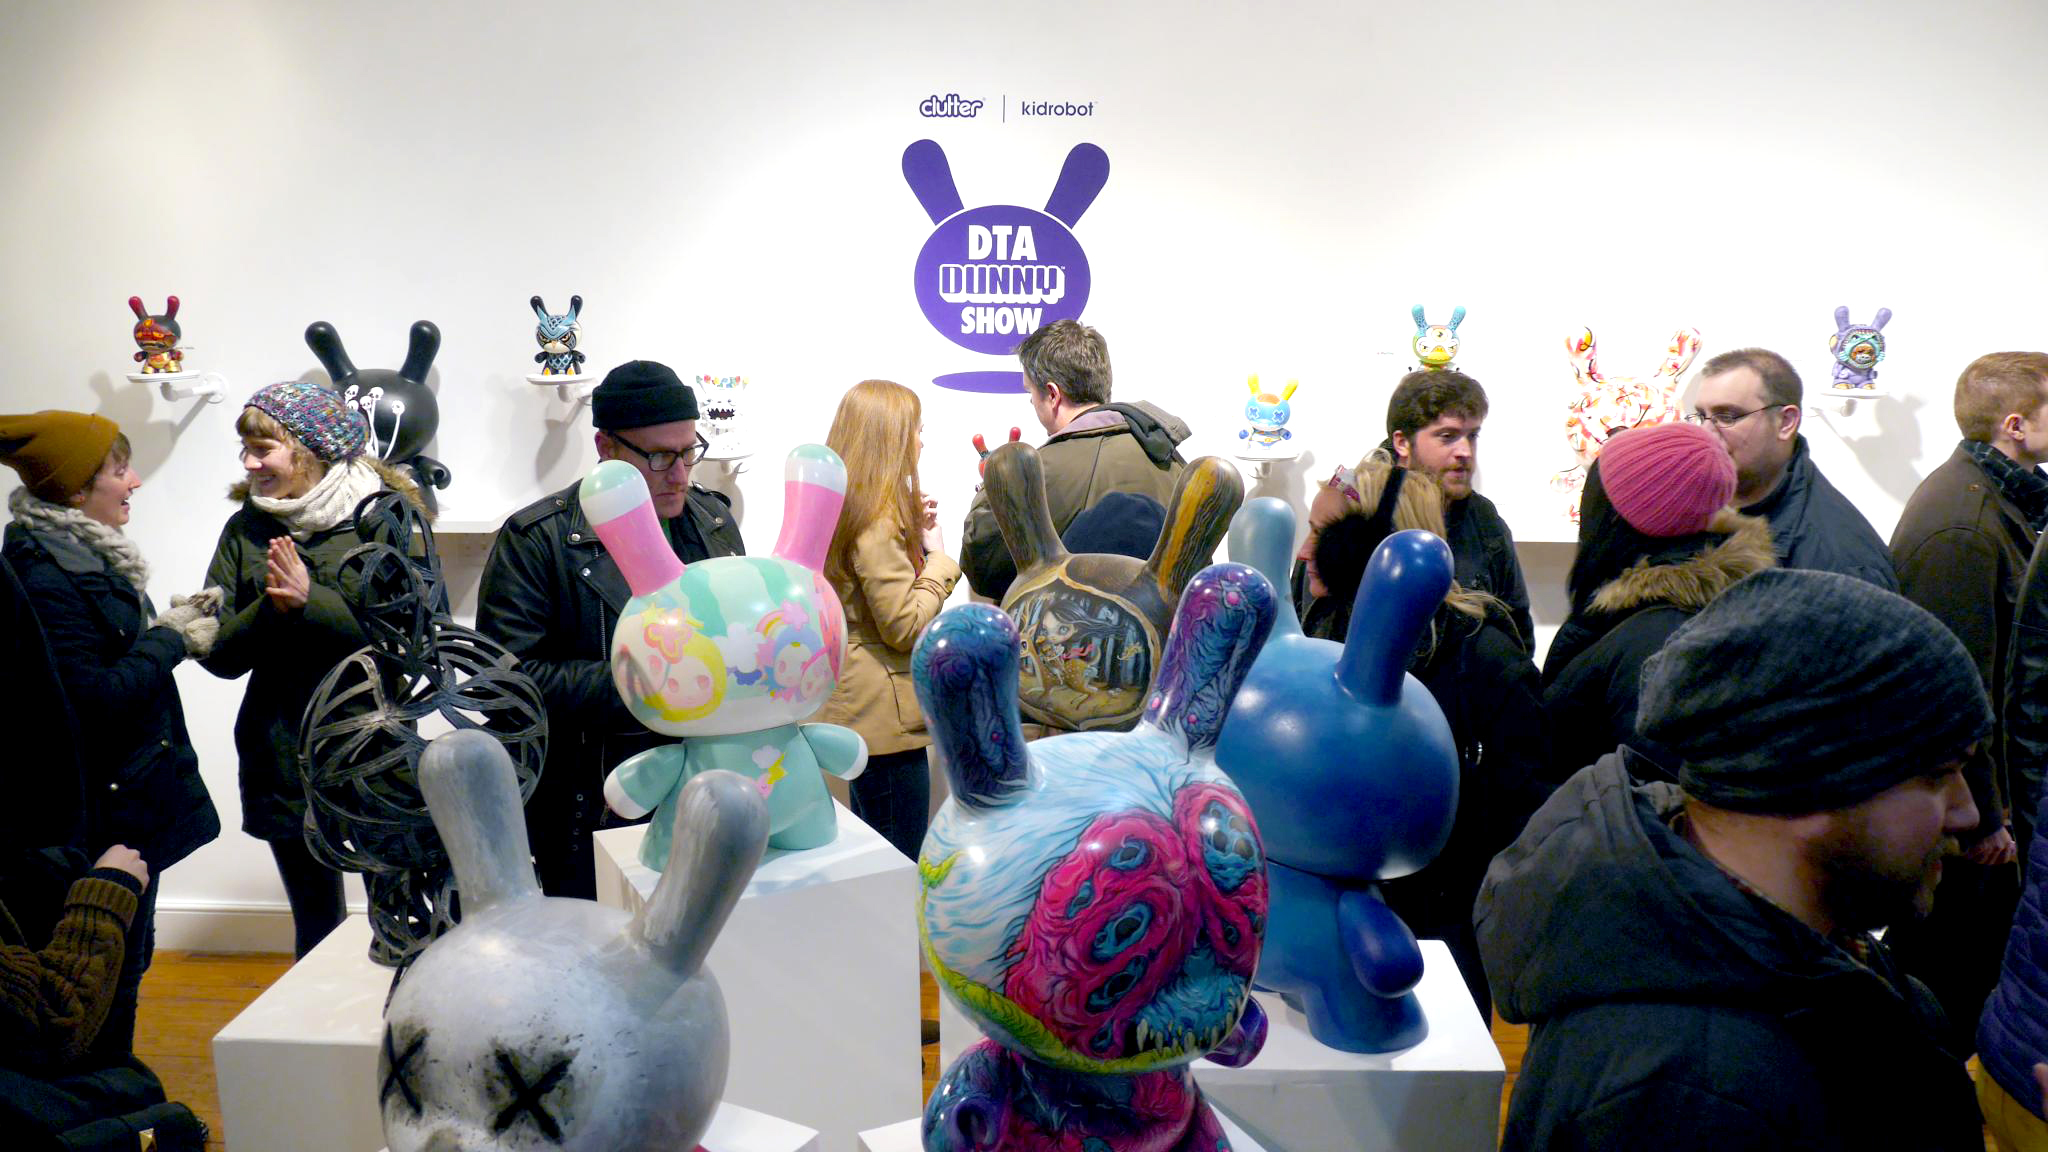 The DTA Dunny Show at Clutter Gallery | Image Courtesy of Clutter Gallery